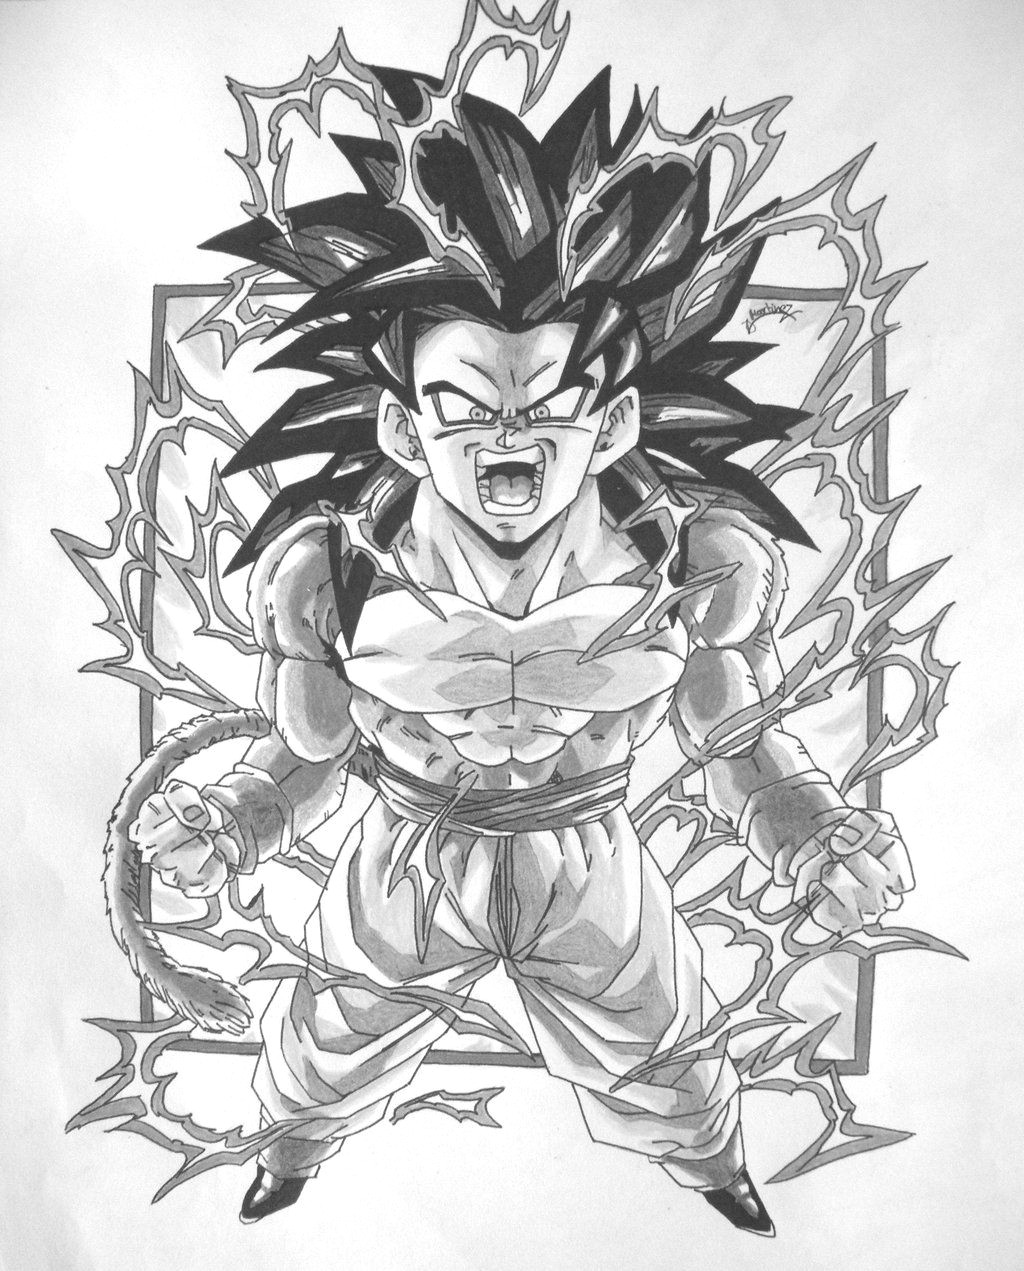 dbz gt character drawings dragonball gt black and white goku ss4 v1 by triigun on deviantart